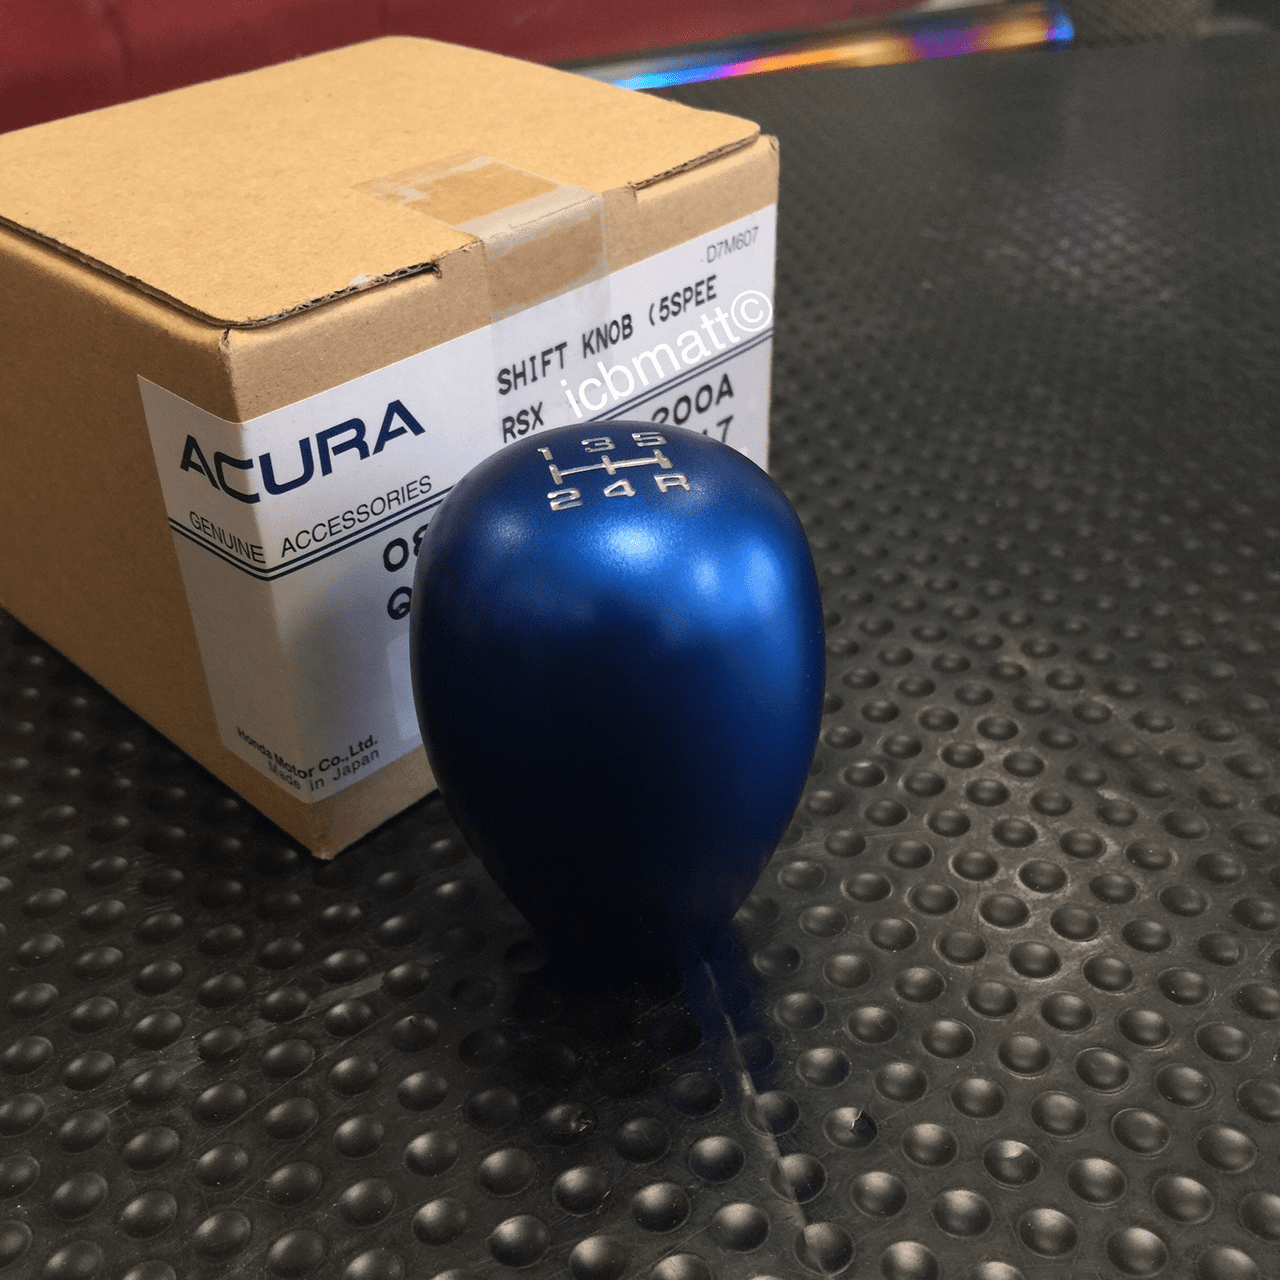 JDM USDM Honda Aluminum 5 Speed Shift Knob with Locking Nut Anodized Blue